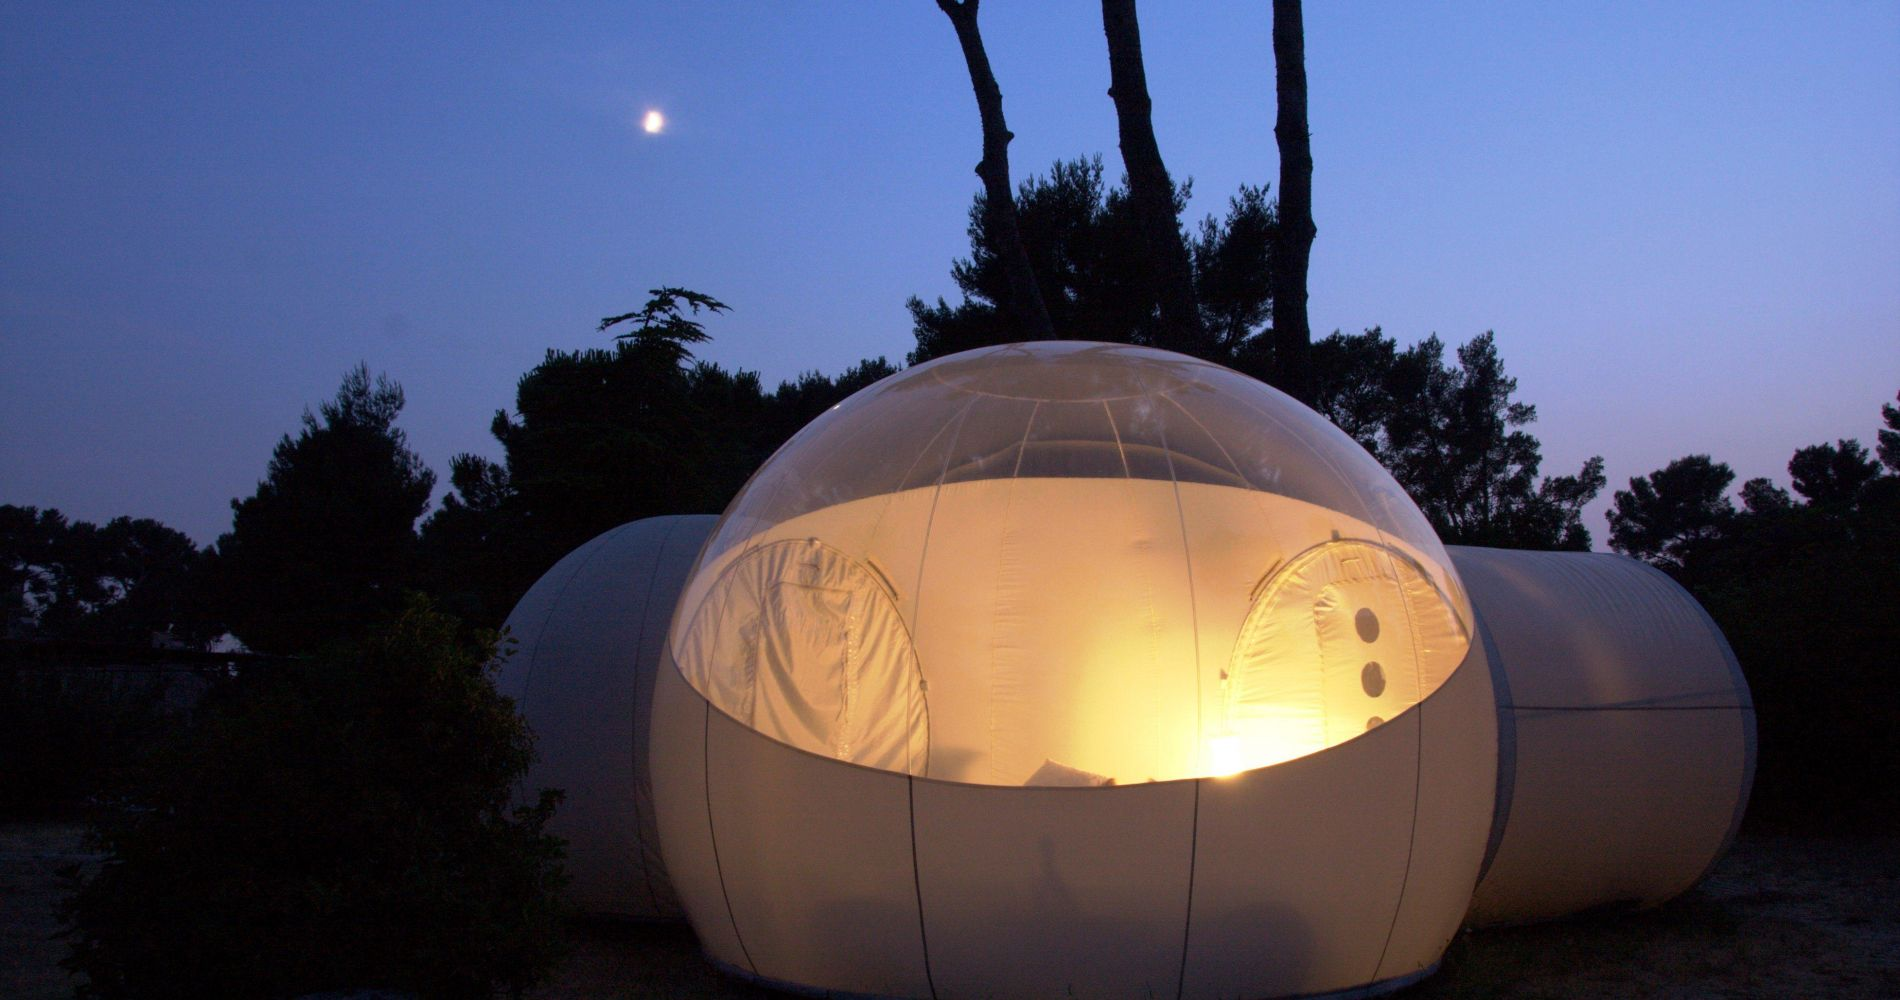 One Night Stay Unique Bubble Hotel France Tinggly Experience Gift